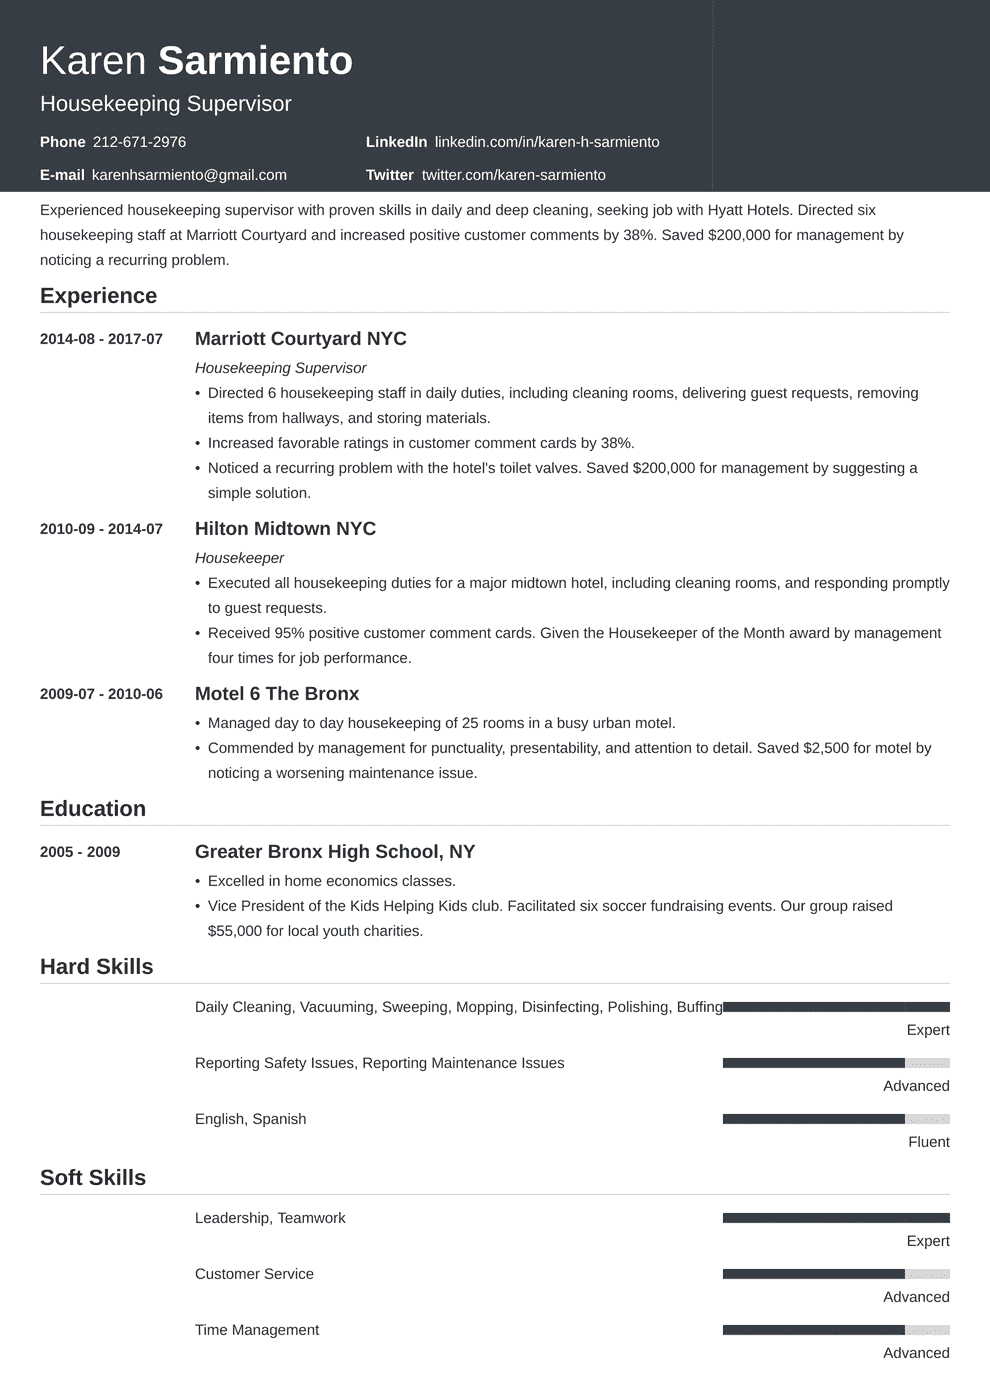 Housekeeping Resume Skills.Housekeeping Resume Sample Complete Guide 20 Examples